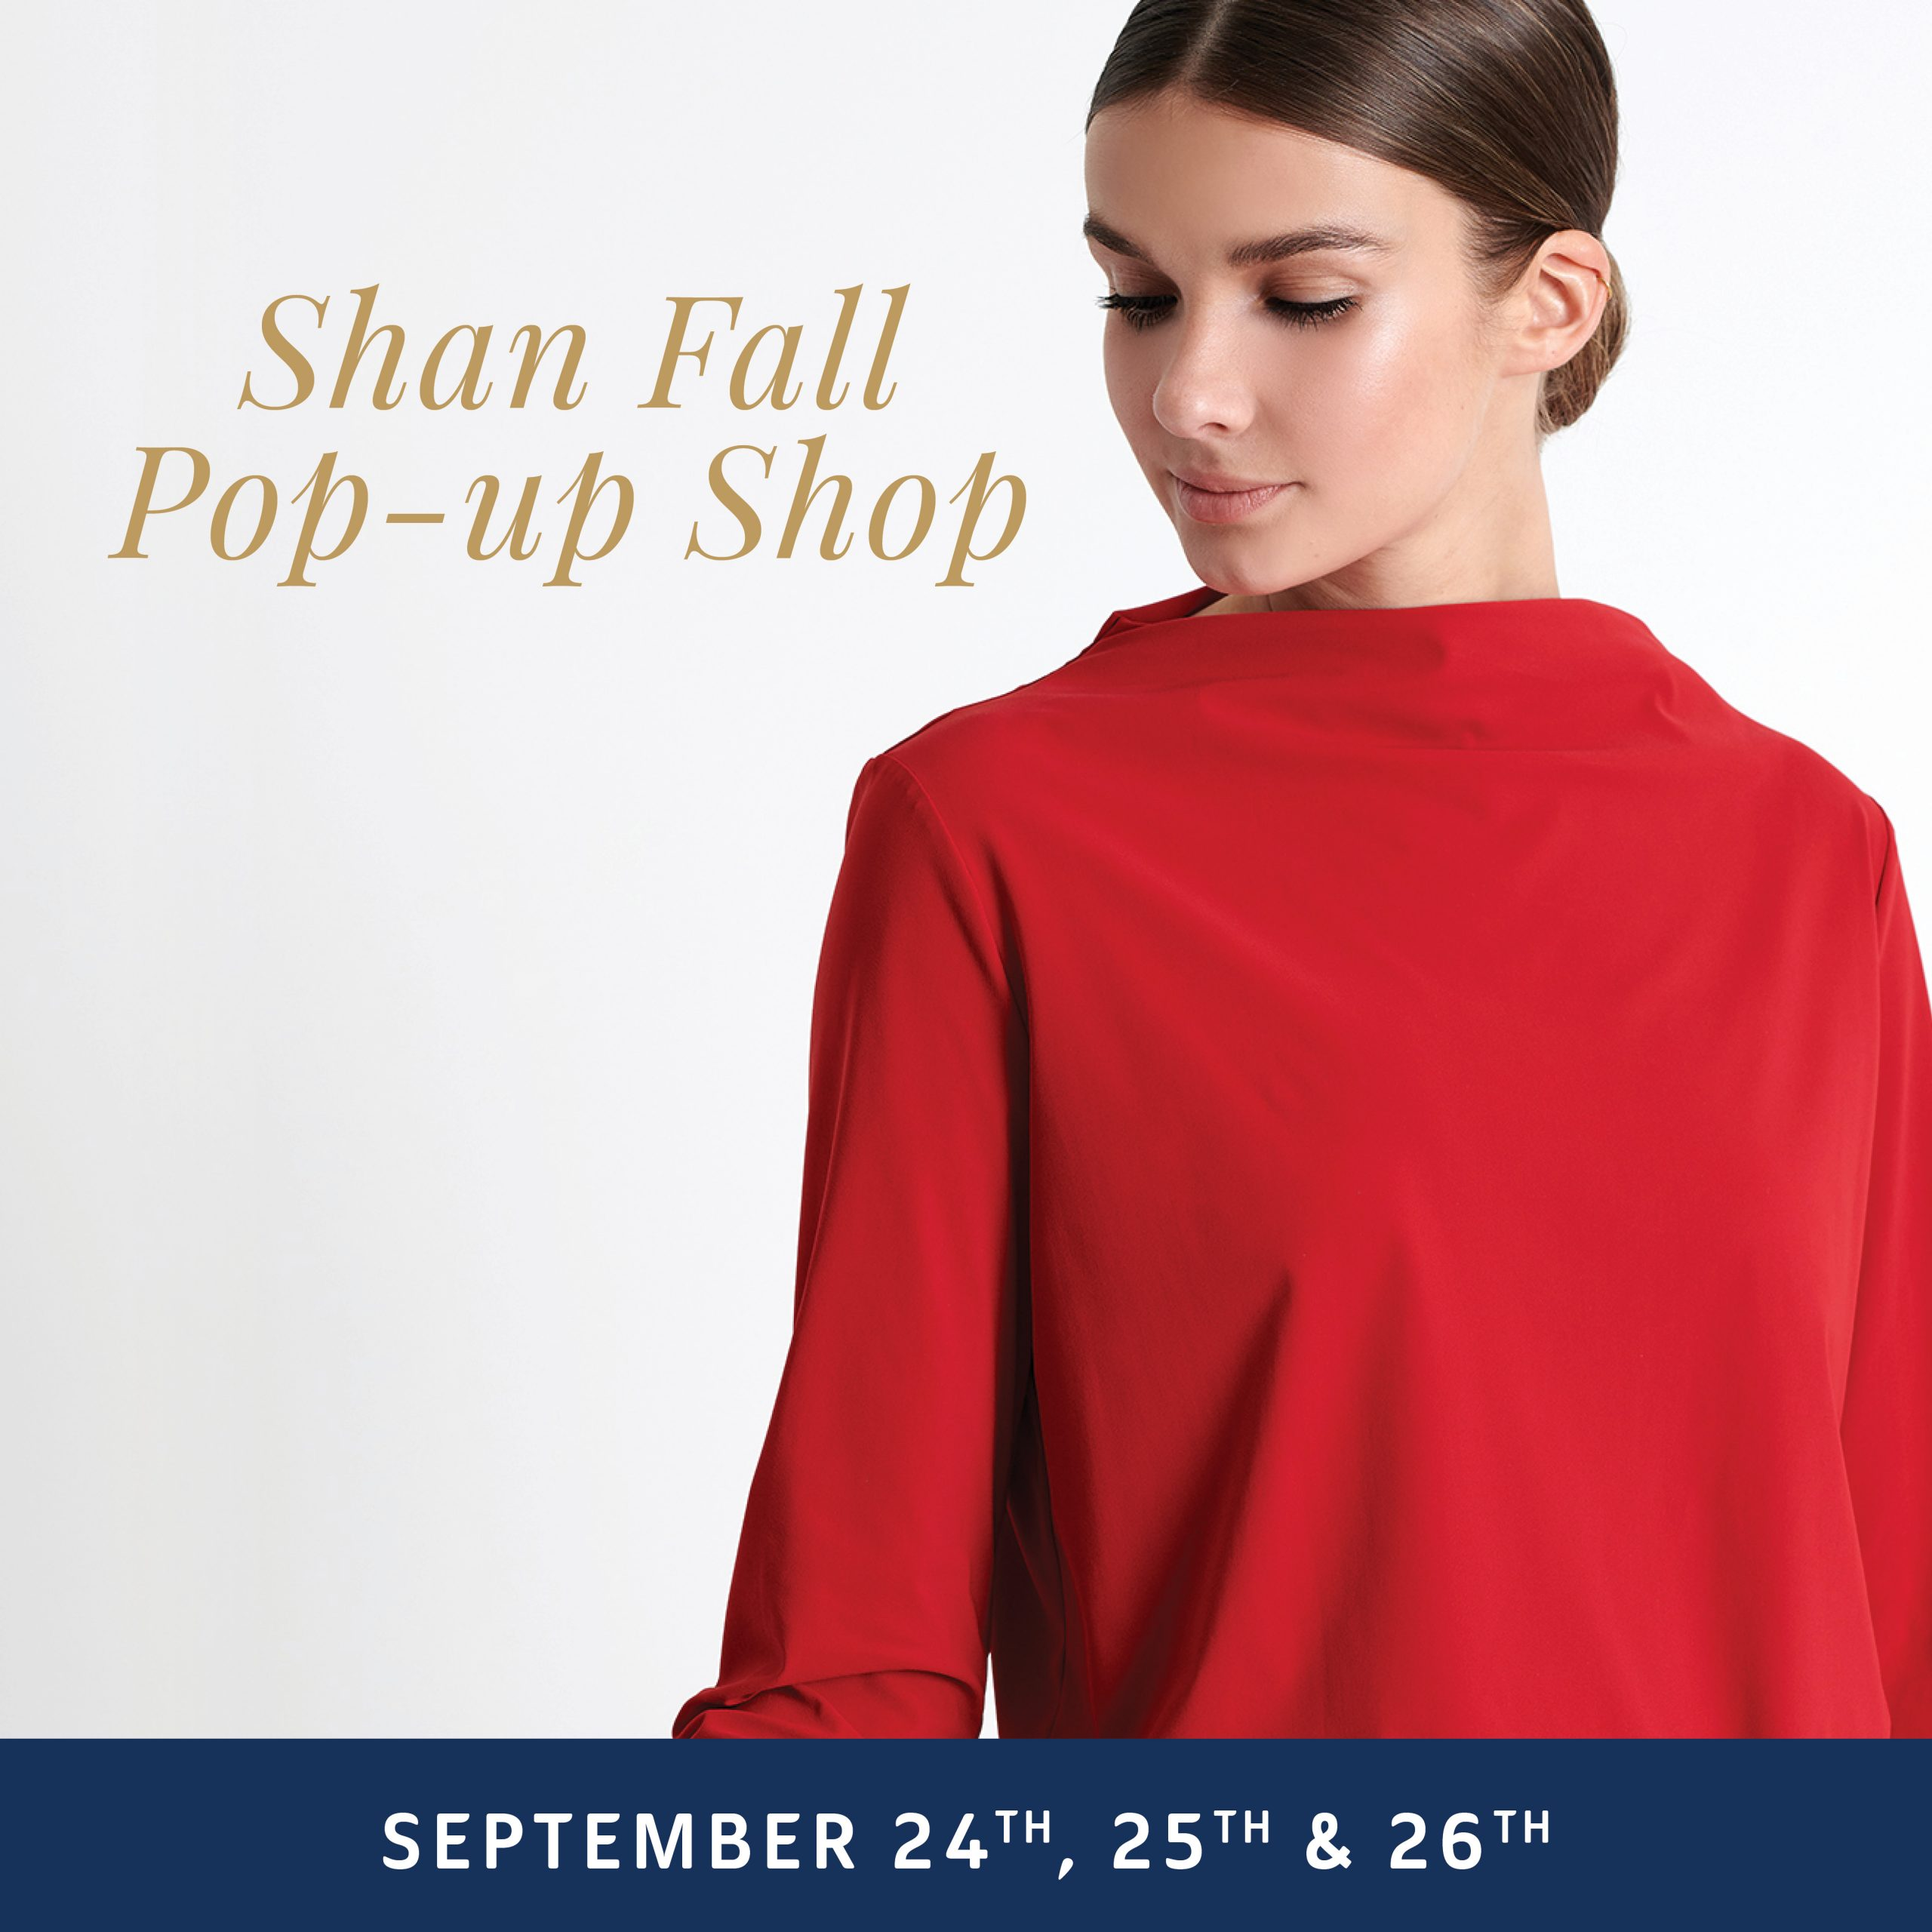 Shan Fall Pop-up Shop